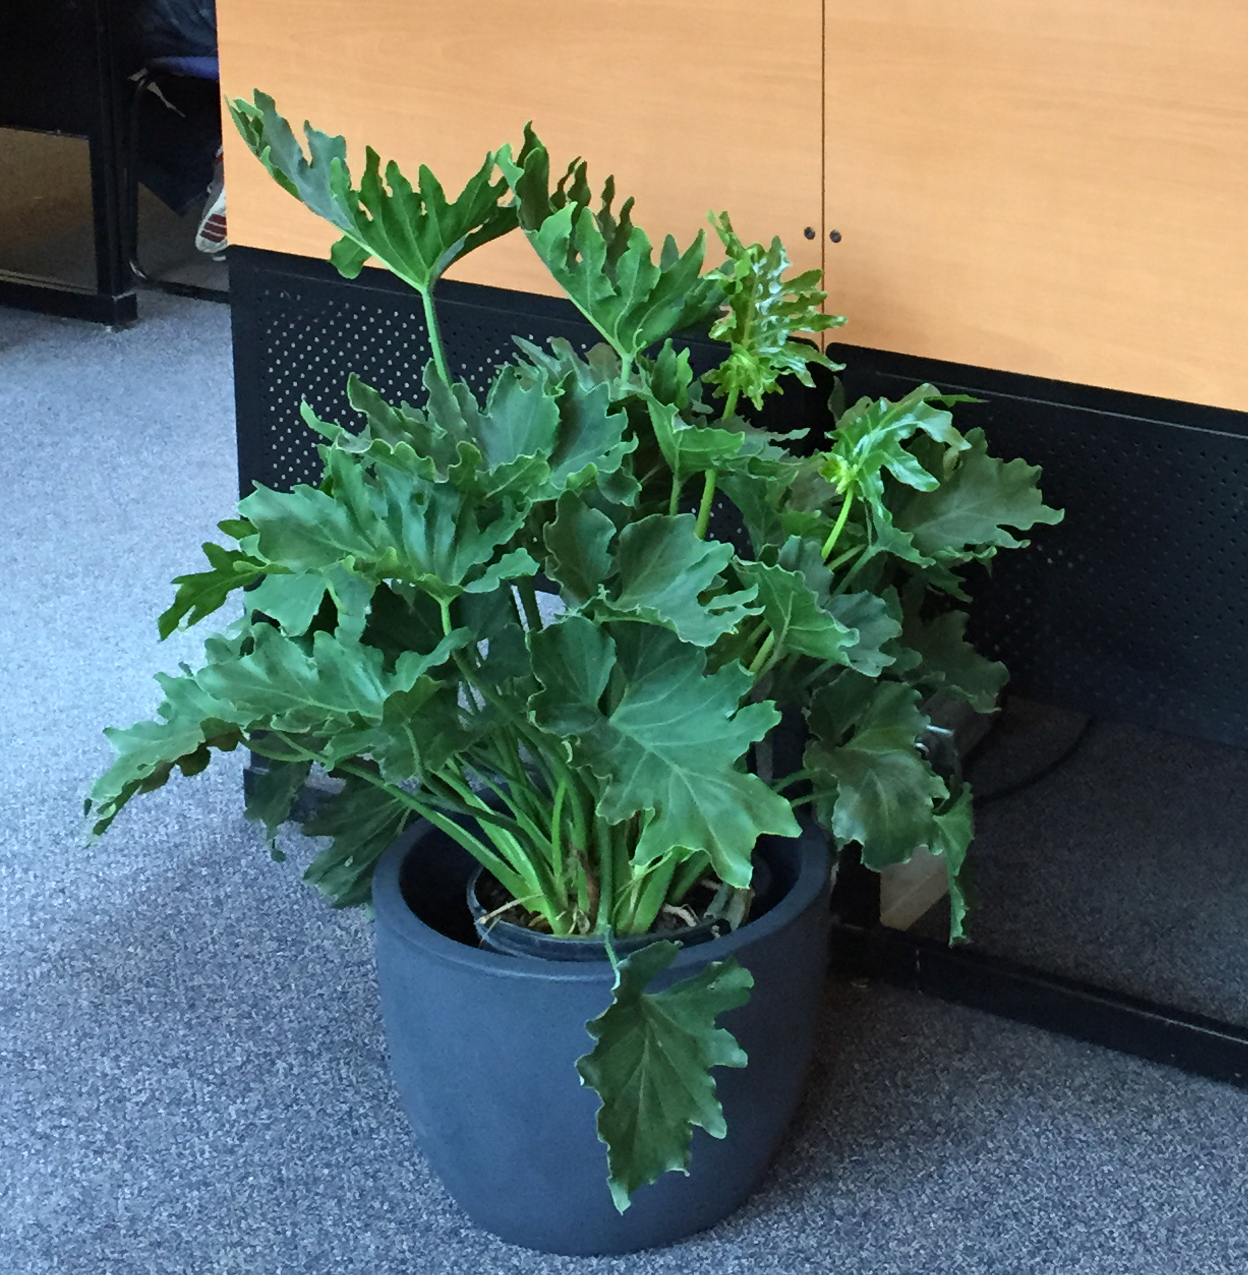 Potted plant in Davis silent study area